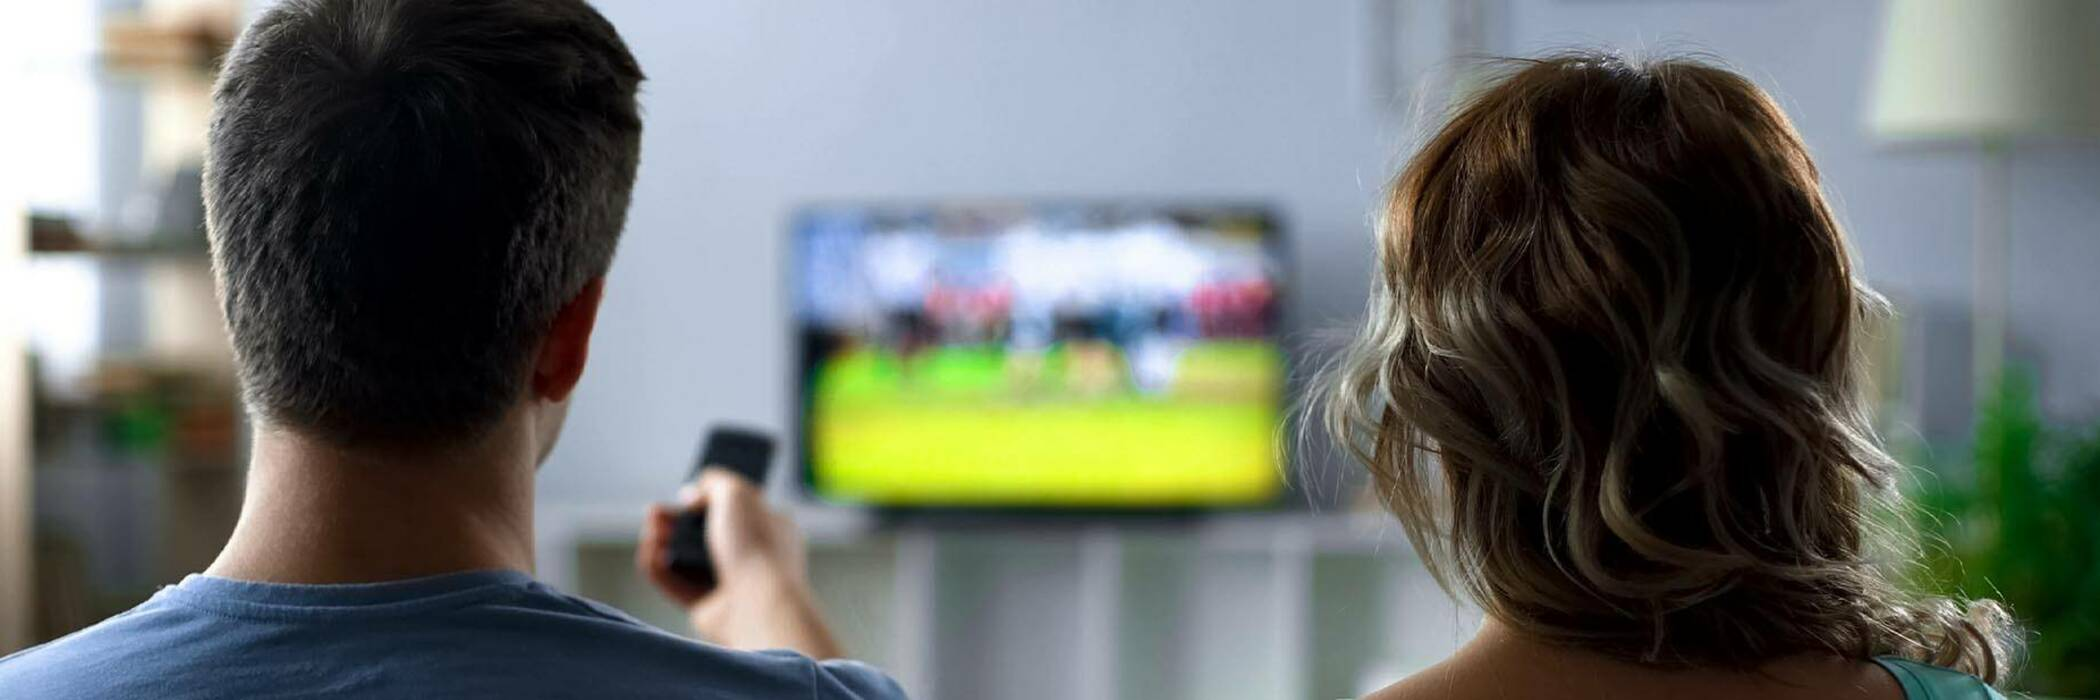 Couple watching sport on TV.